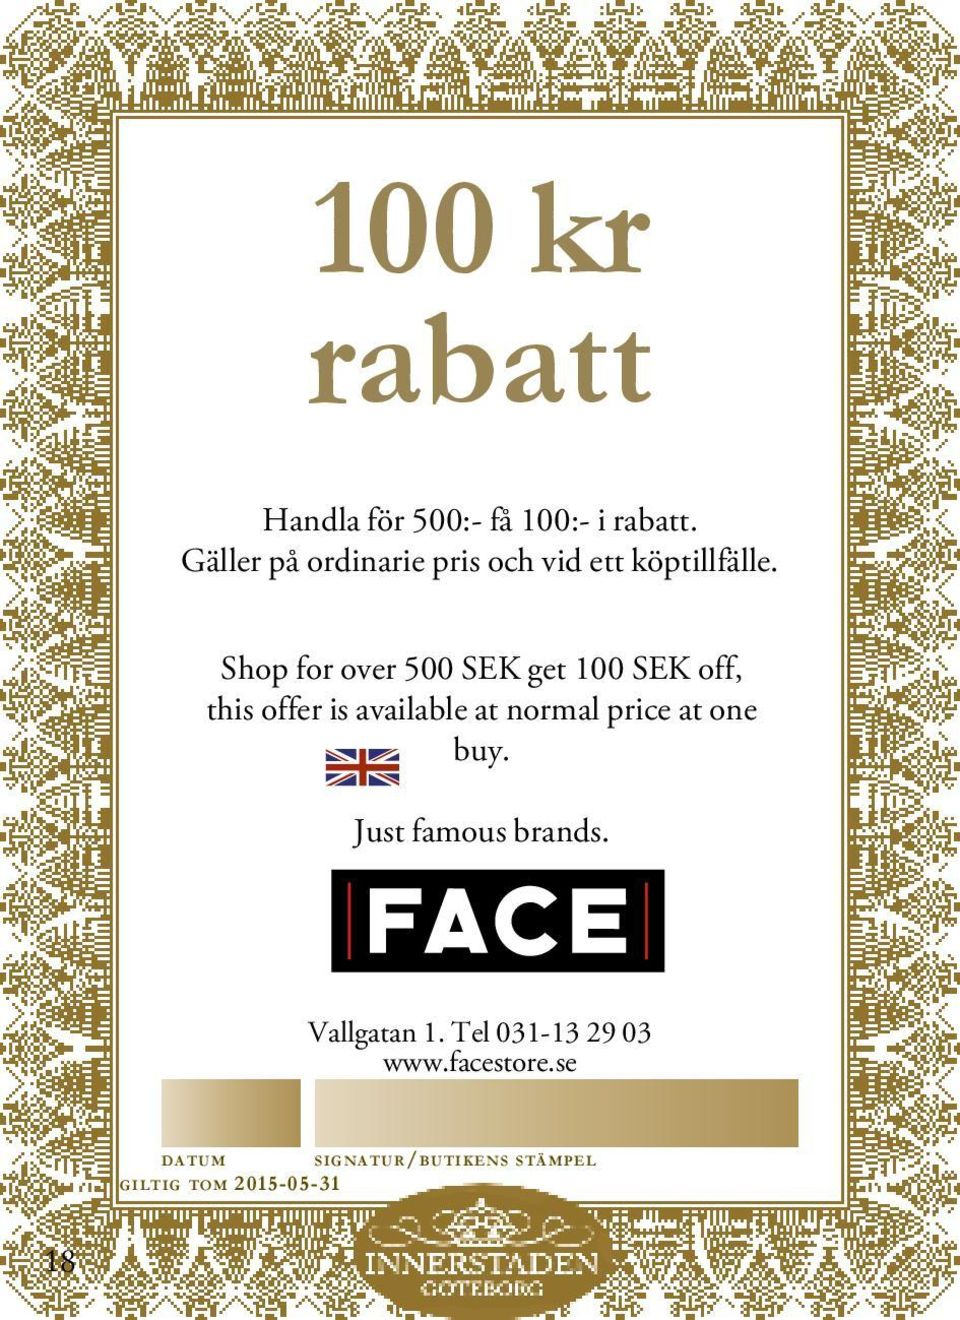 Shop for over 500 SEK get 100 SEK off, this offer is available at